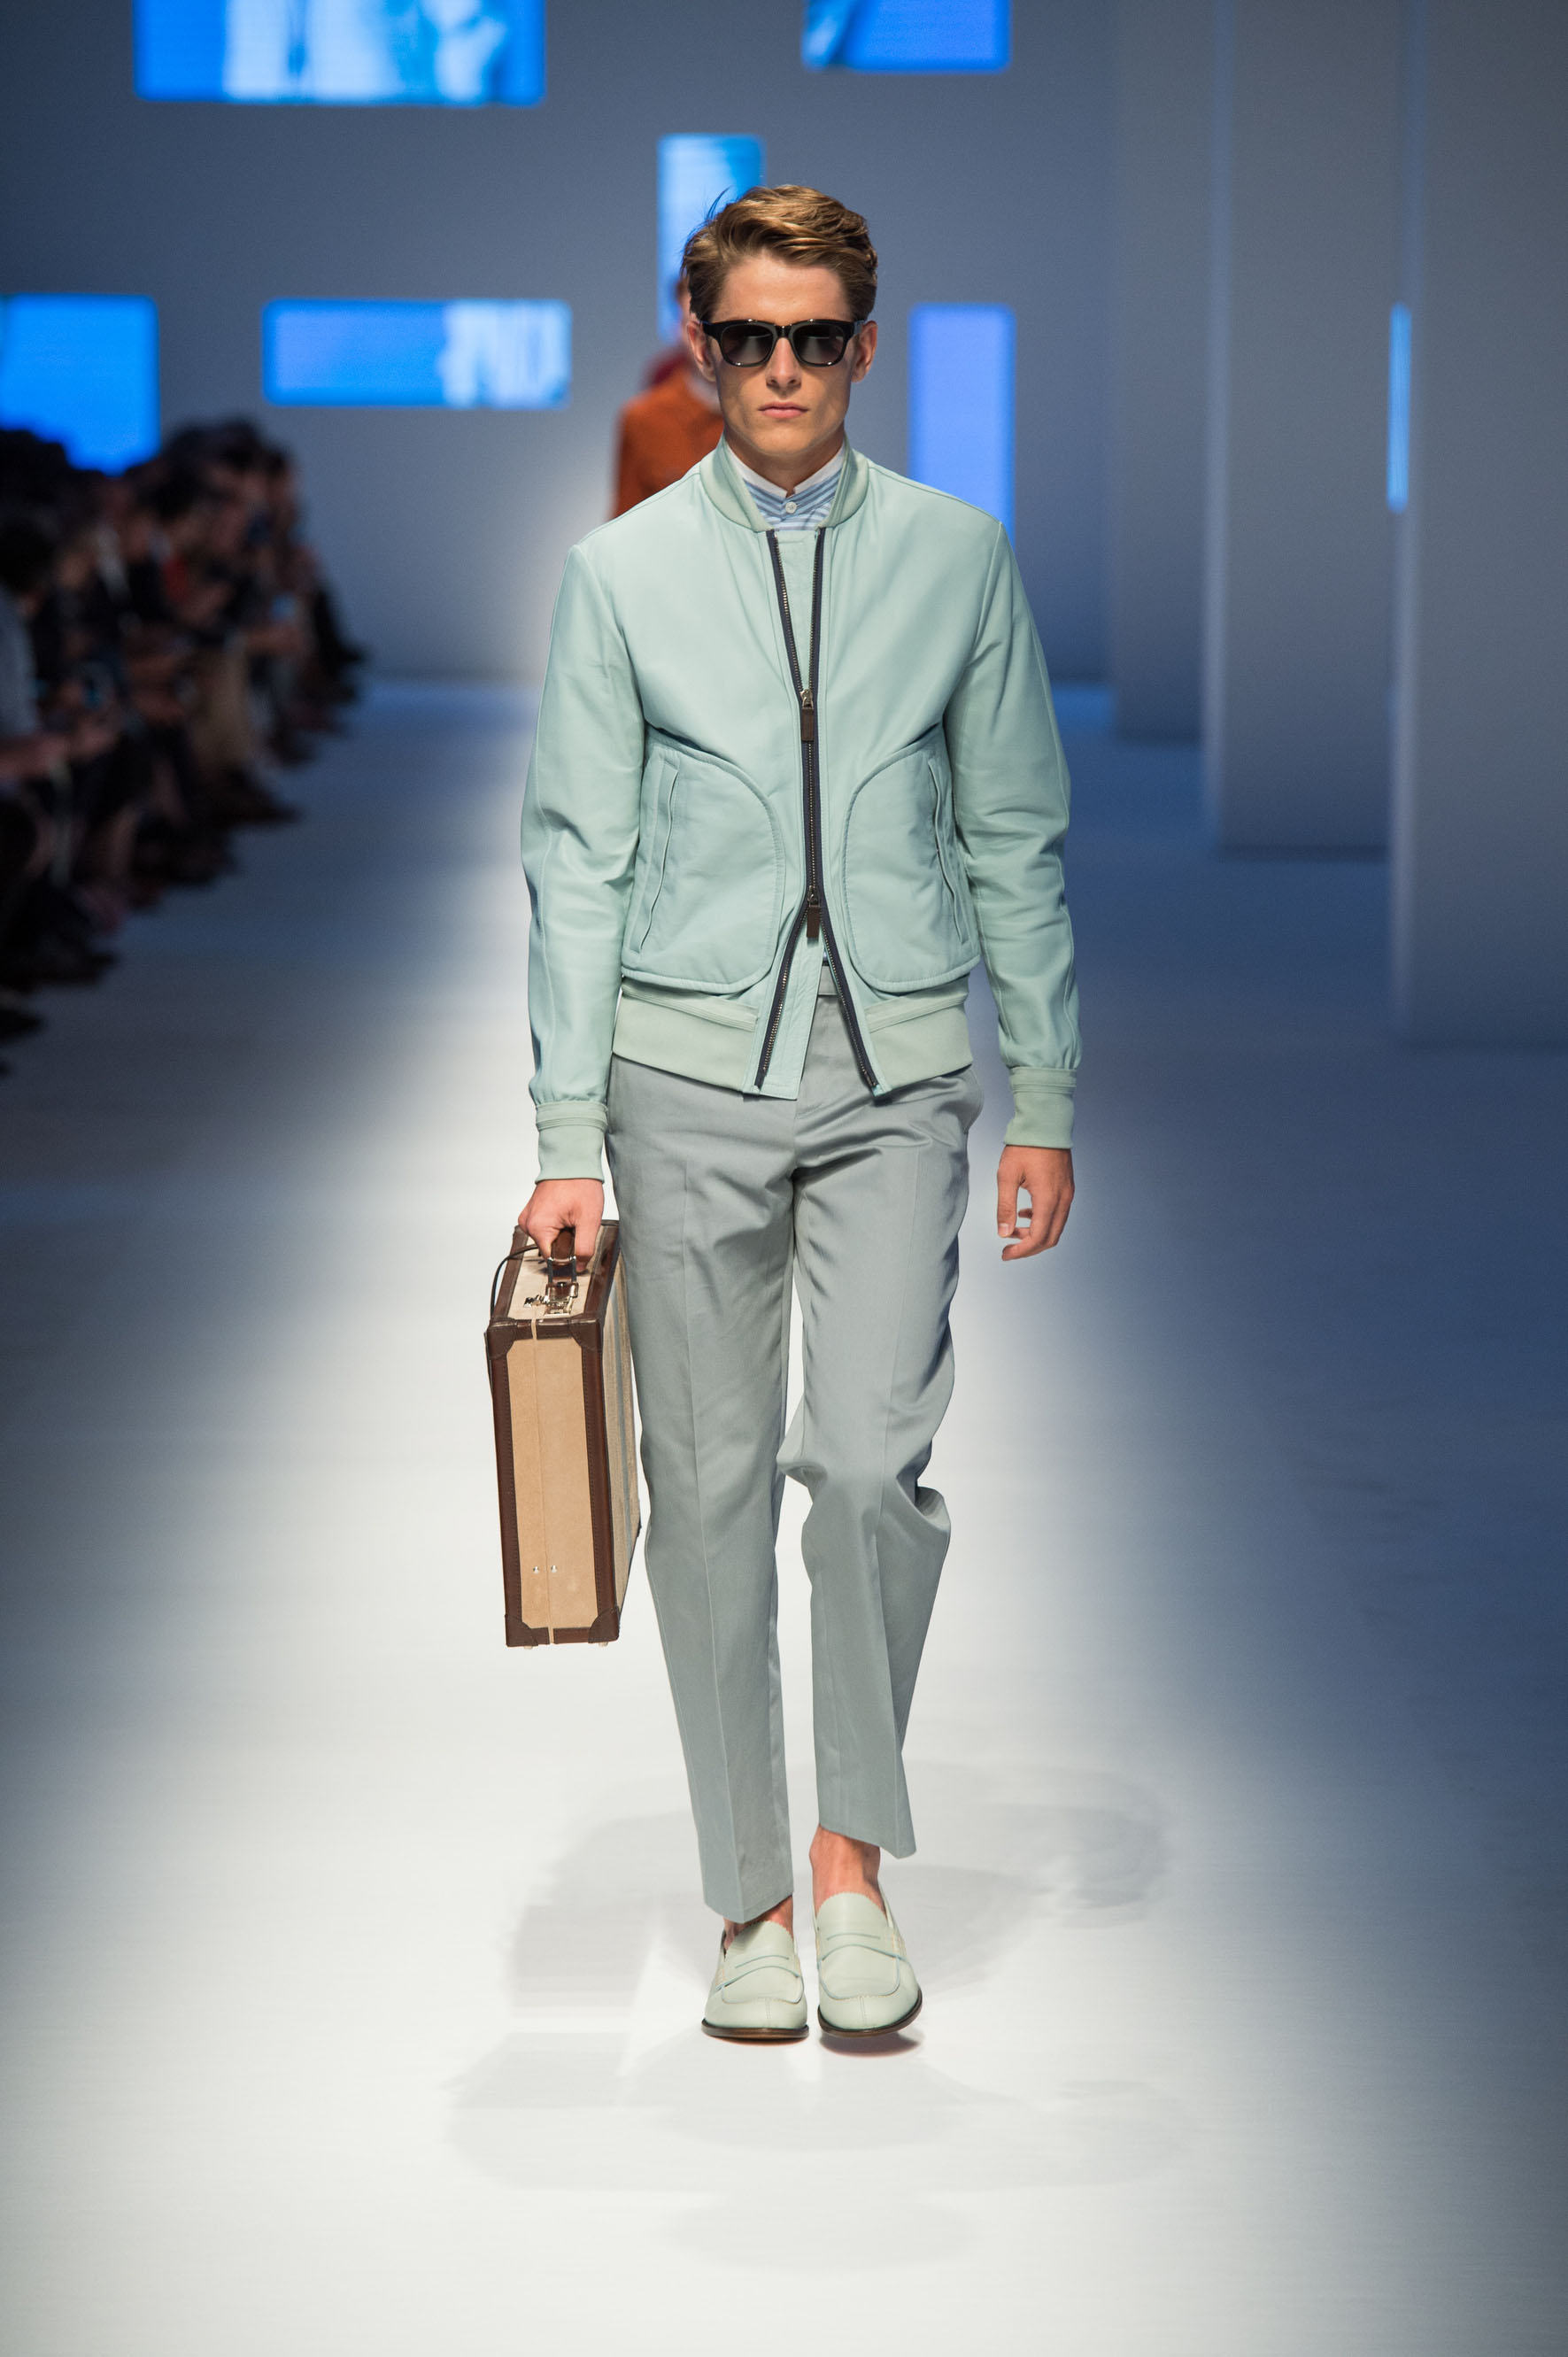 Unlined jacket in rubberized nappa, cotton pants, loafers in calfskin, briefcase with contrast color stripe